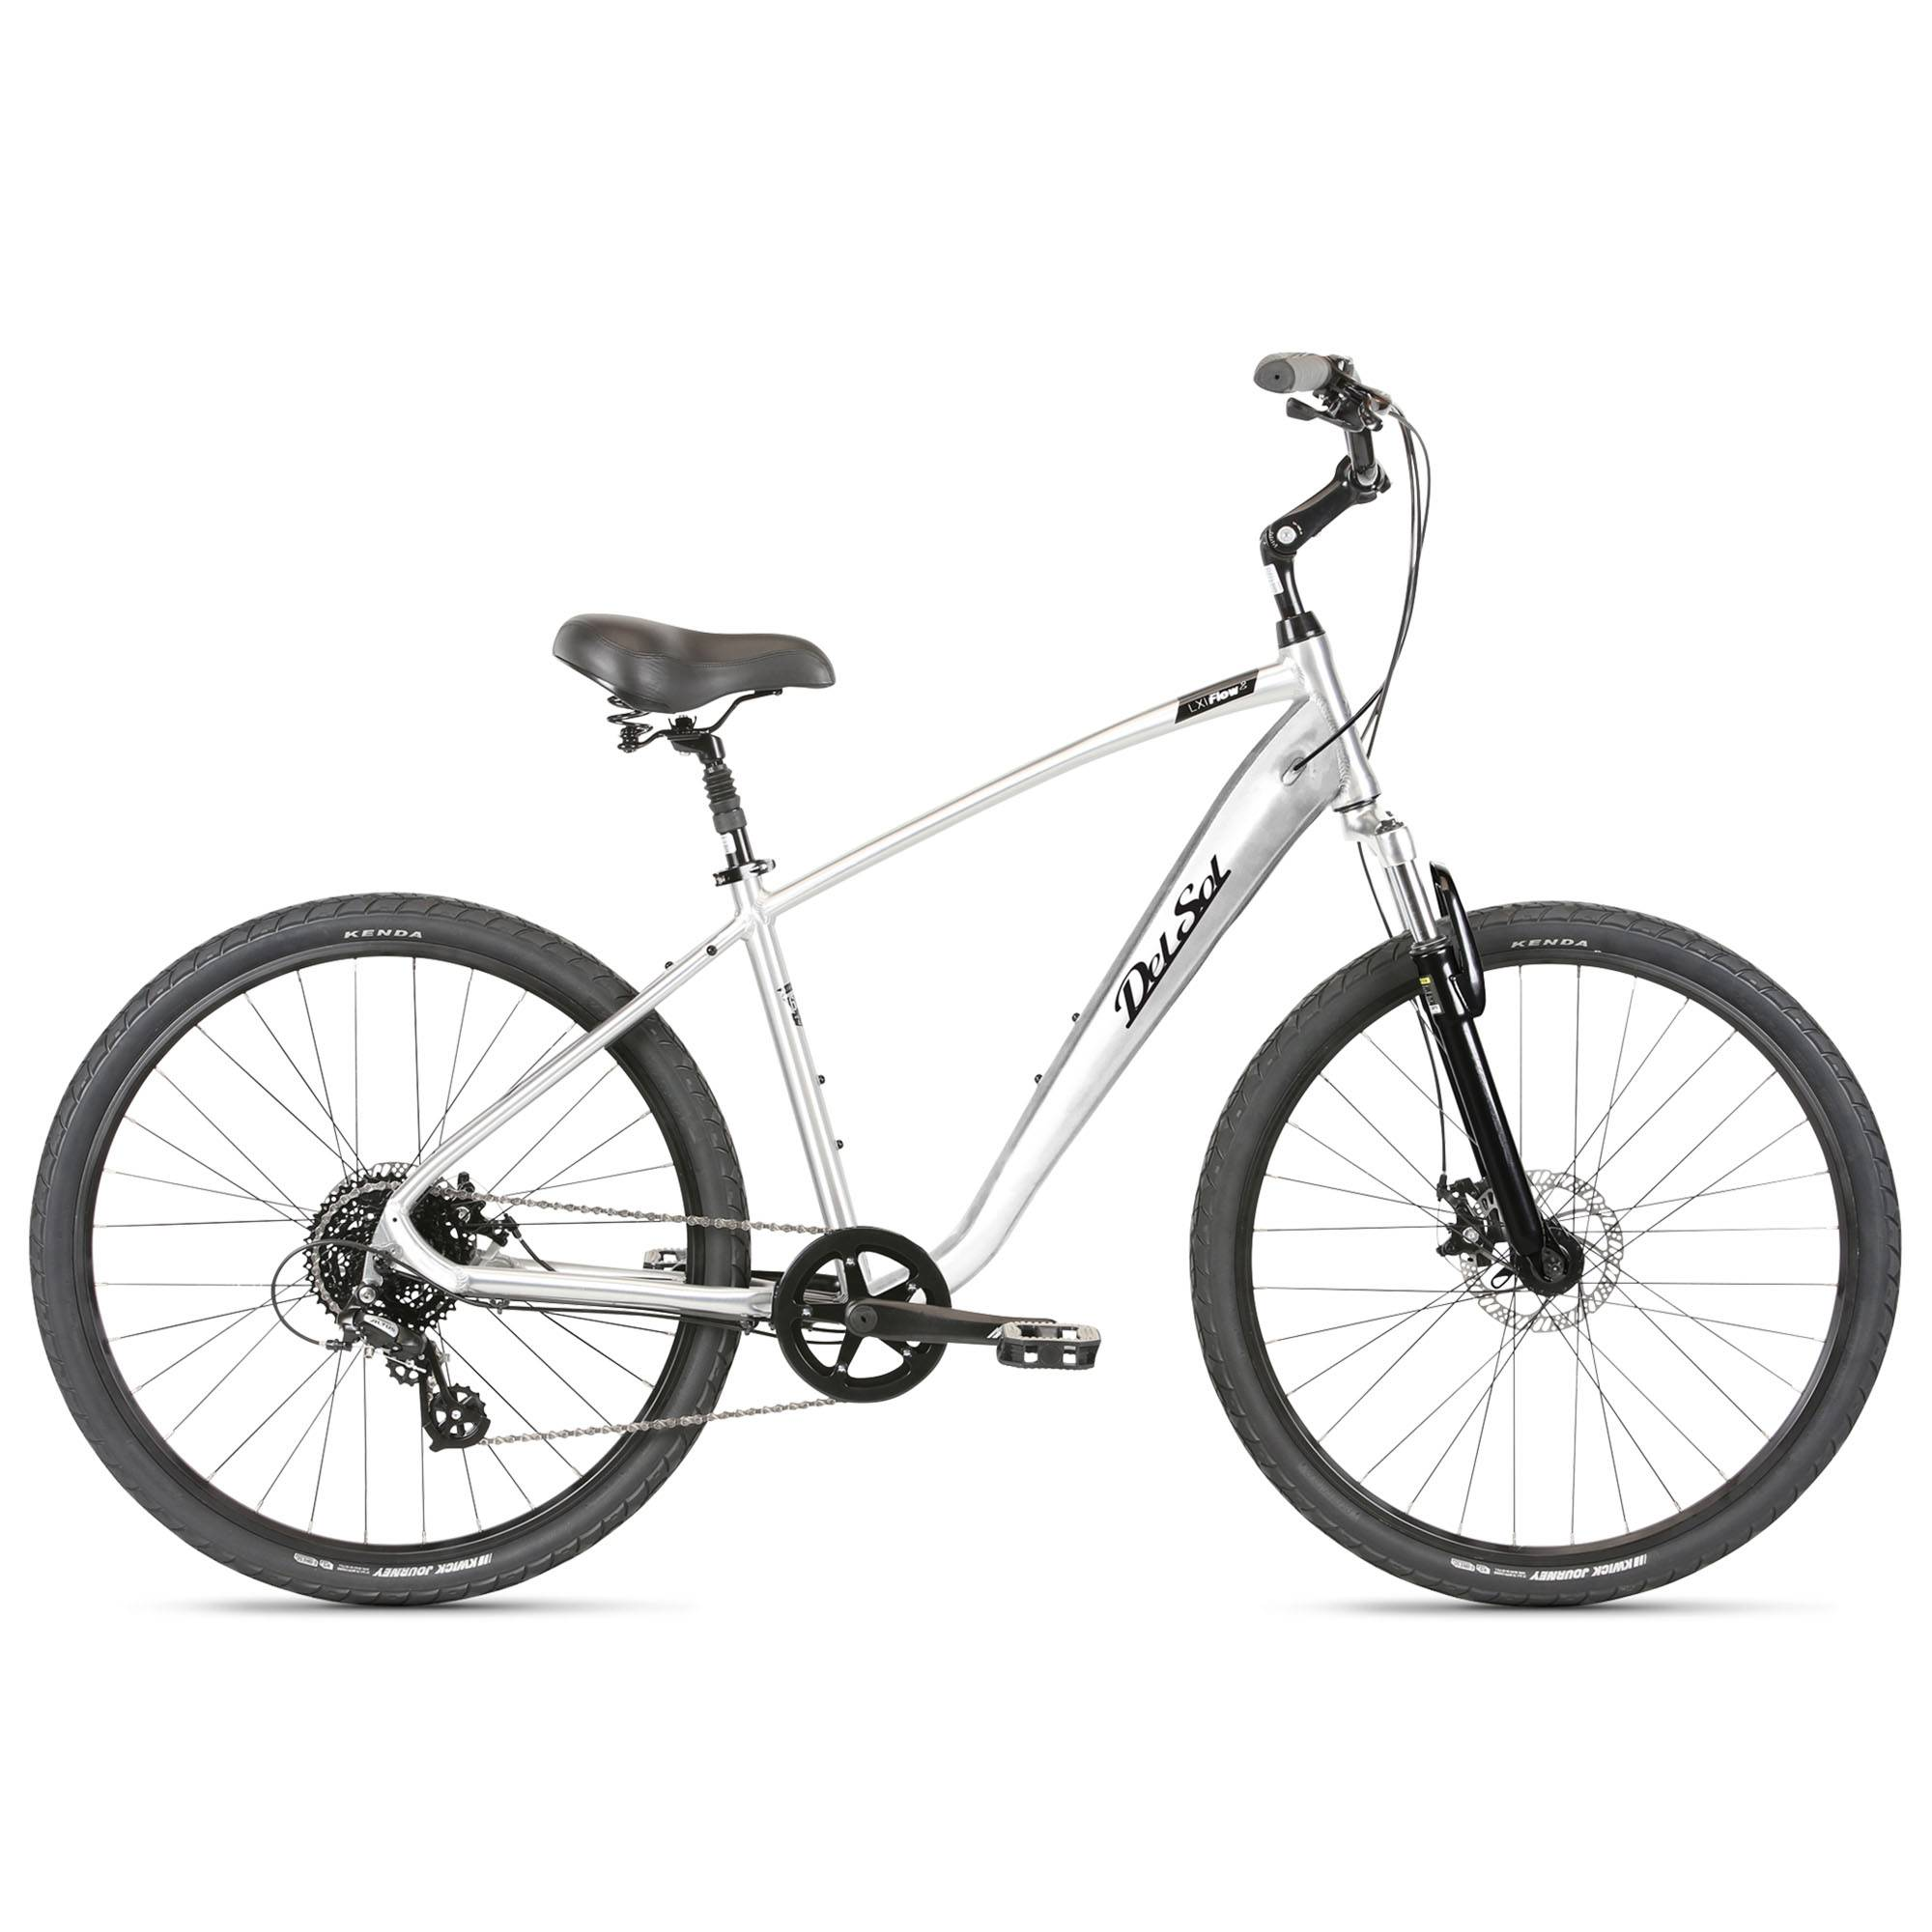 Del Sol Men's LXI Flow 2 Comfort Bike '21  - Brushed Alloy - Size: Small